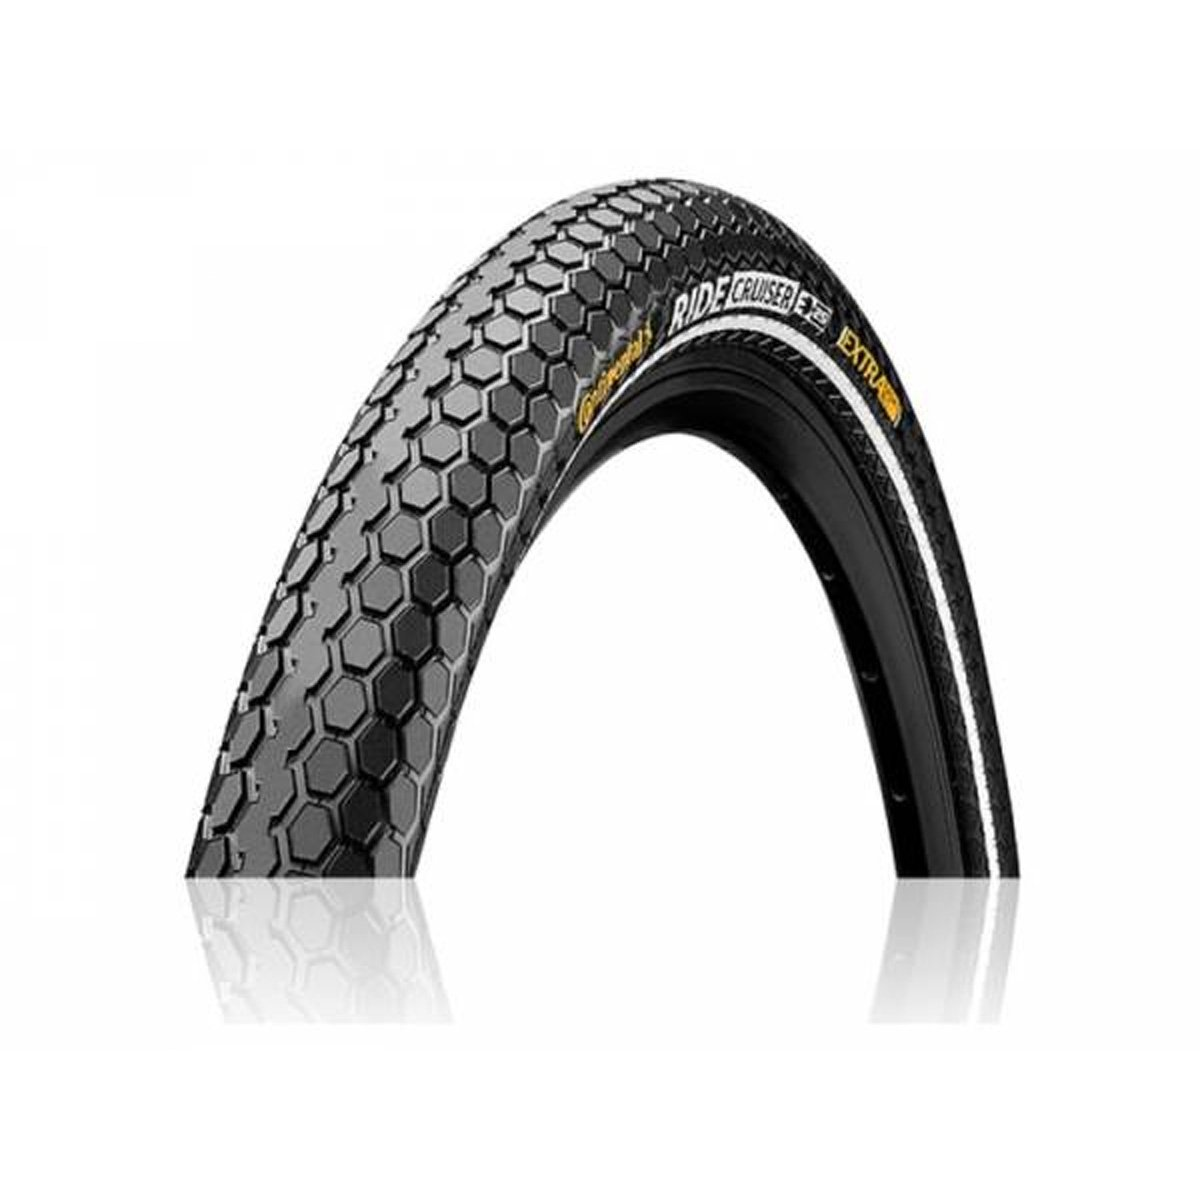 Continental Ride Cruiser ETRTO Bike Tires, Black Reflex, 26x2.2 (55-559) 0101527